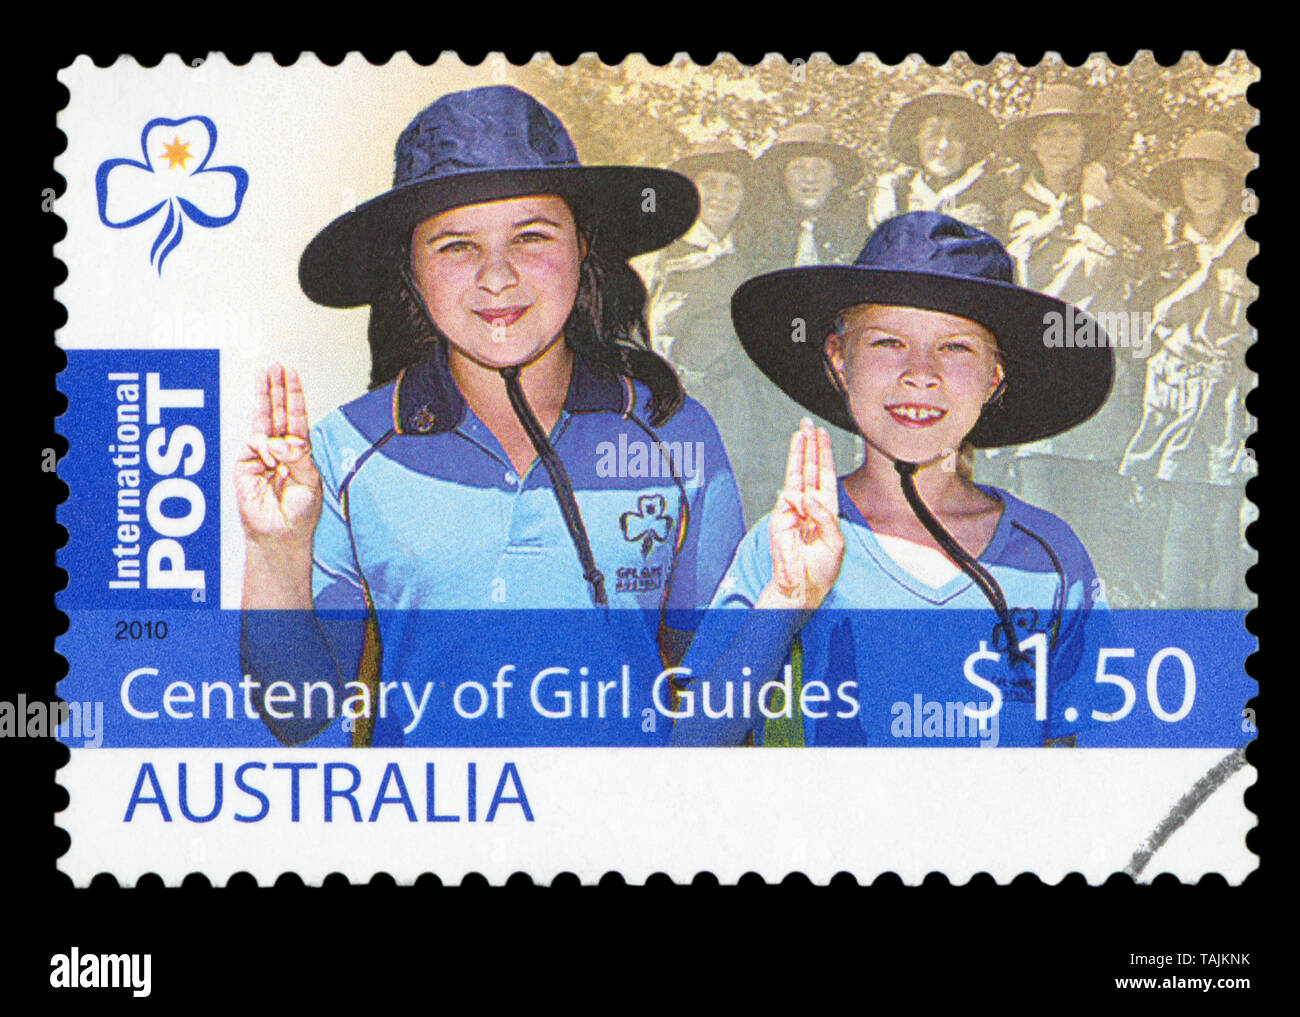 AUSTRALIA - CIRCA 2010: A used postage stamp from Australia, commemorating the 100th Anniversary of Girl Guides, circa 2010. - Stock Image